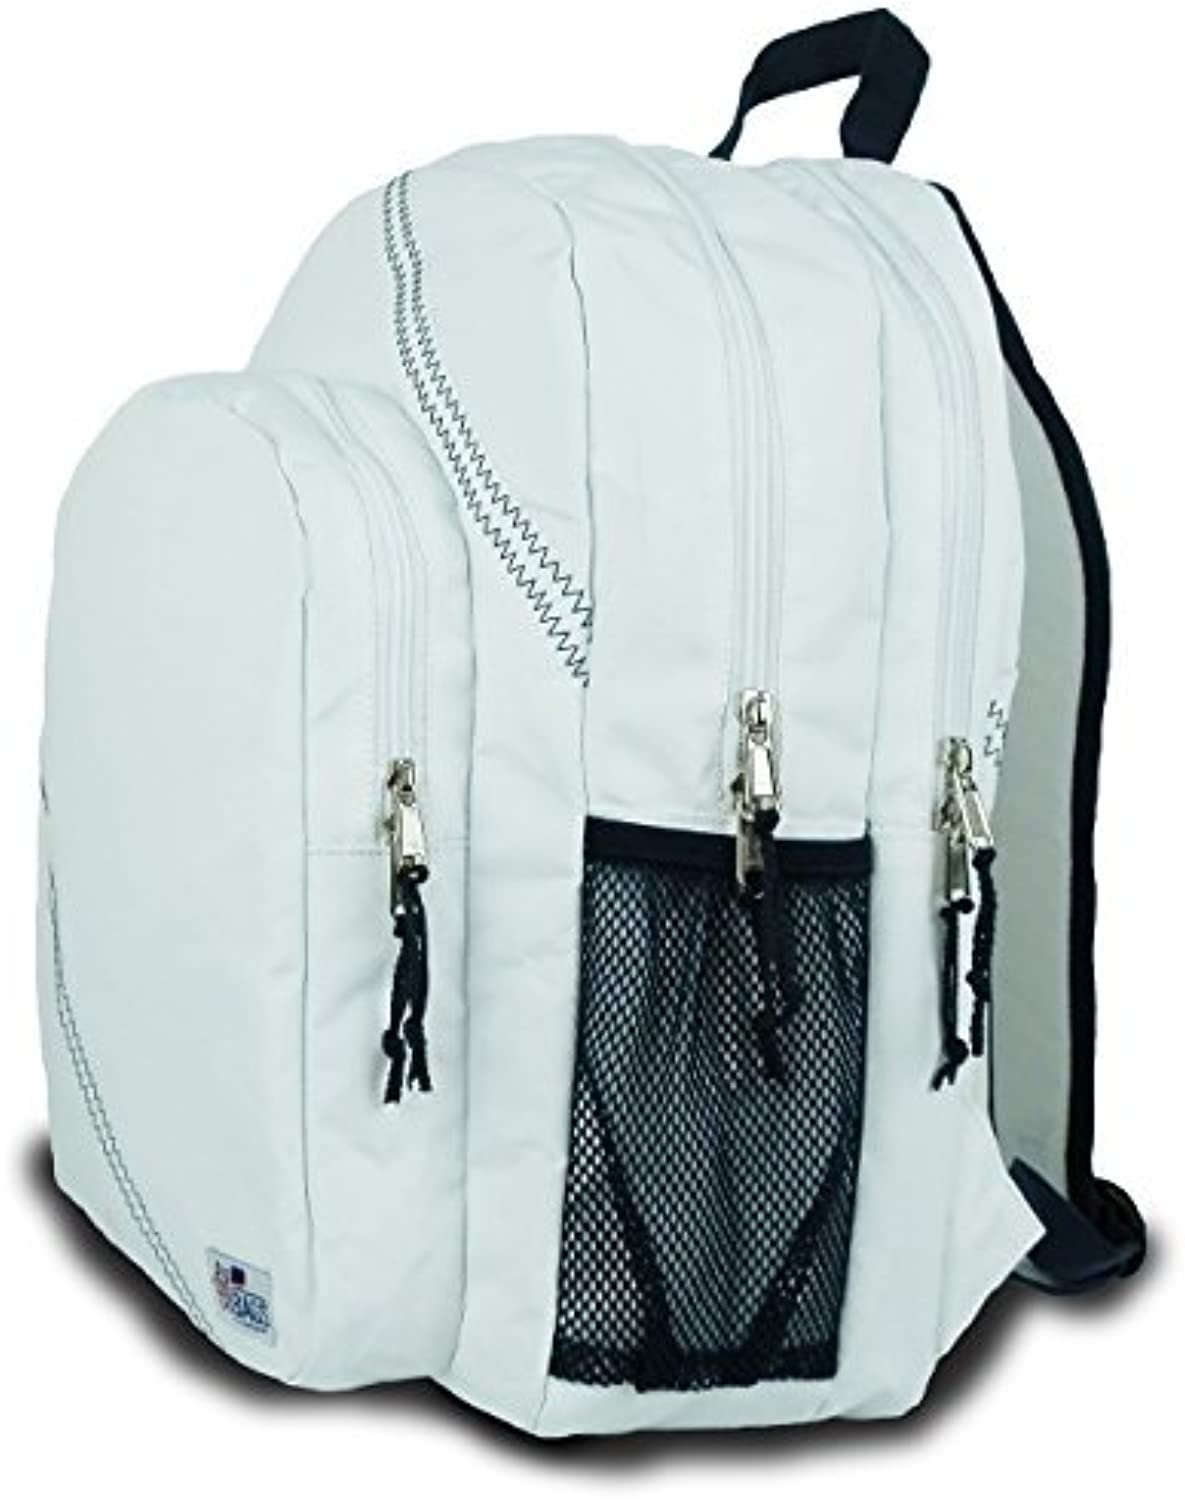 Sailor Bags Back Pack (White) by Sailor Bags